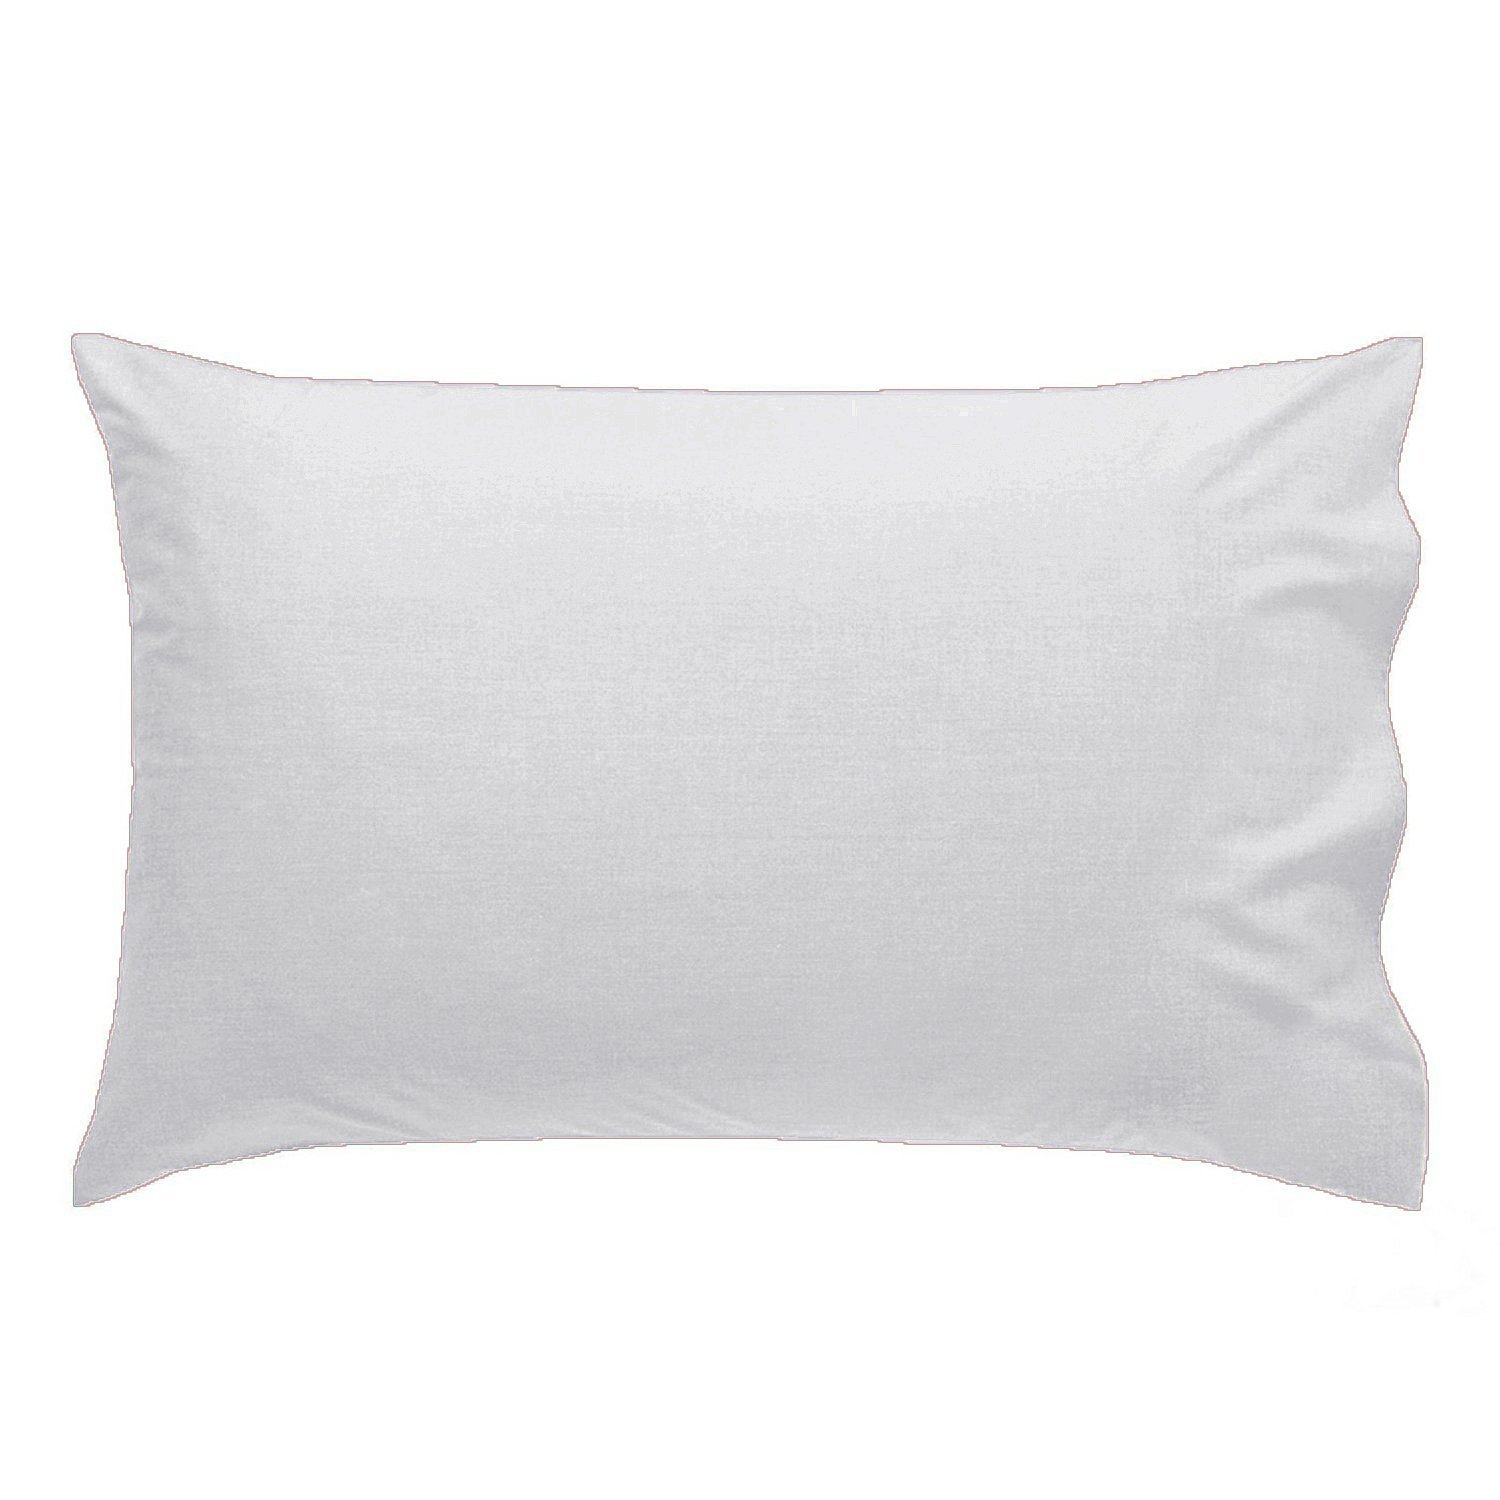 2 x LUXURY PILLOW CASES POLYCOTTON PAIR PACK HOUSEWIFE BEDROOM PILLOW COVER HUMLIN (White) by HUMLIN